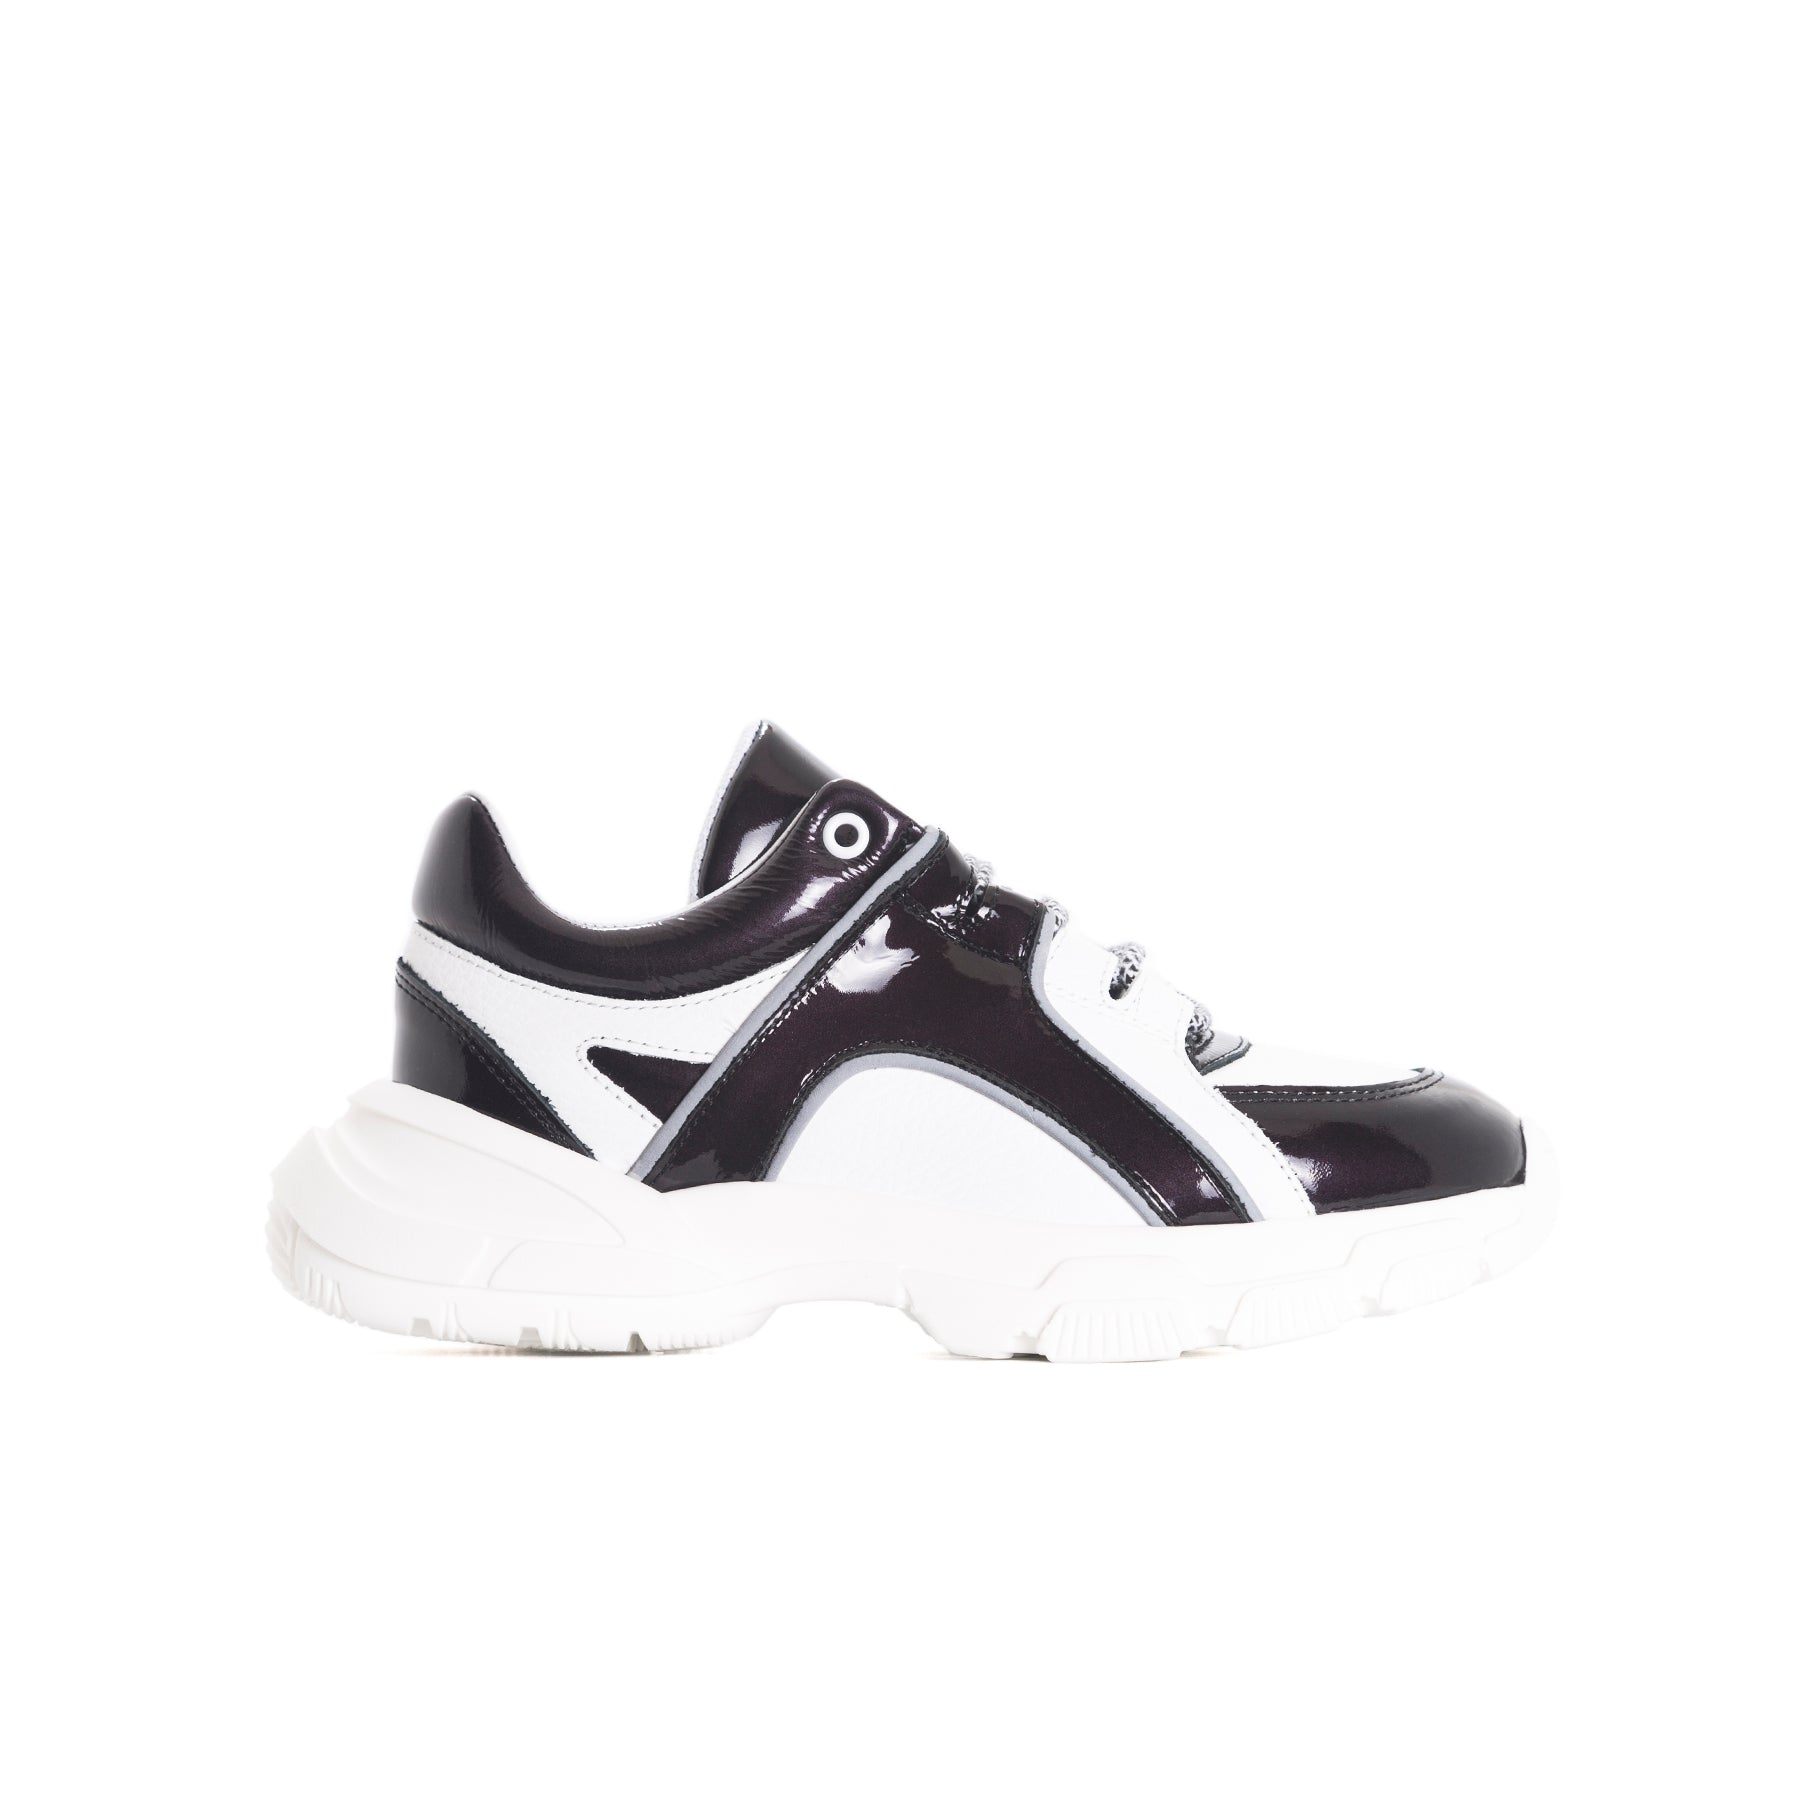 Slick Black&White Leather Sneakers